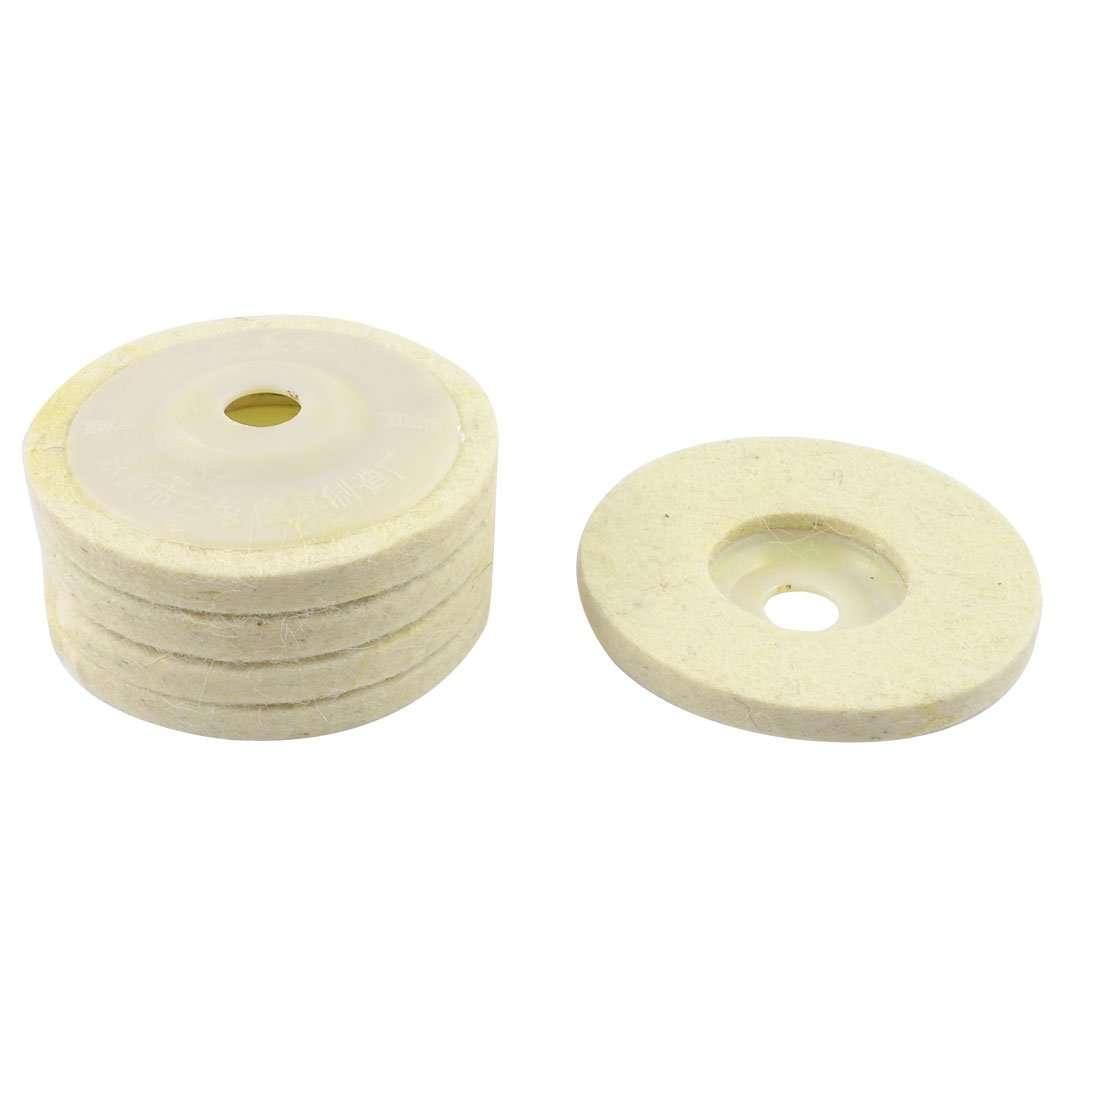 AYHF-5 Pcs Off White Wool Felt Polishing Disc Wheel Pad 100mm x 10mm x 16mm